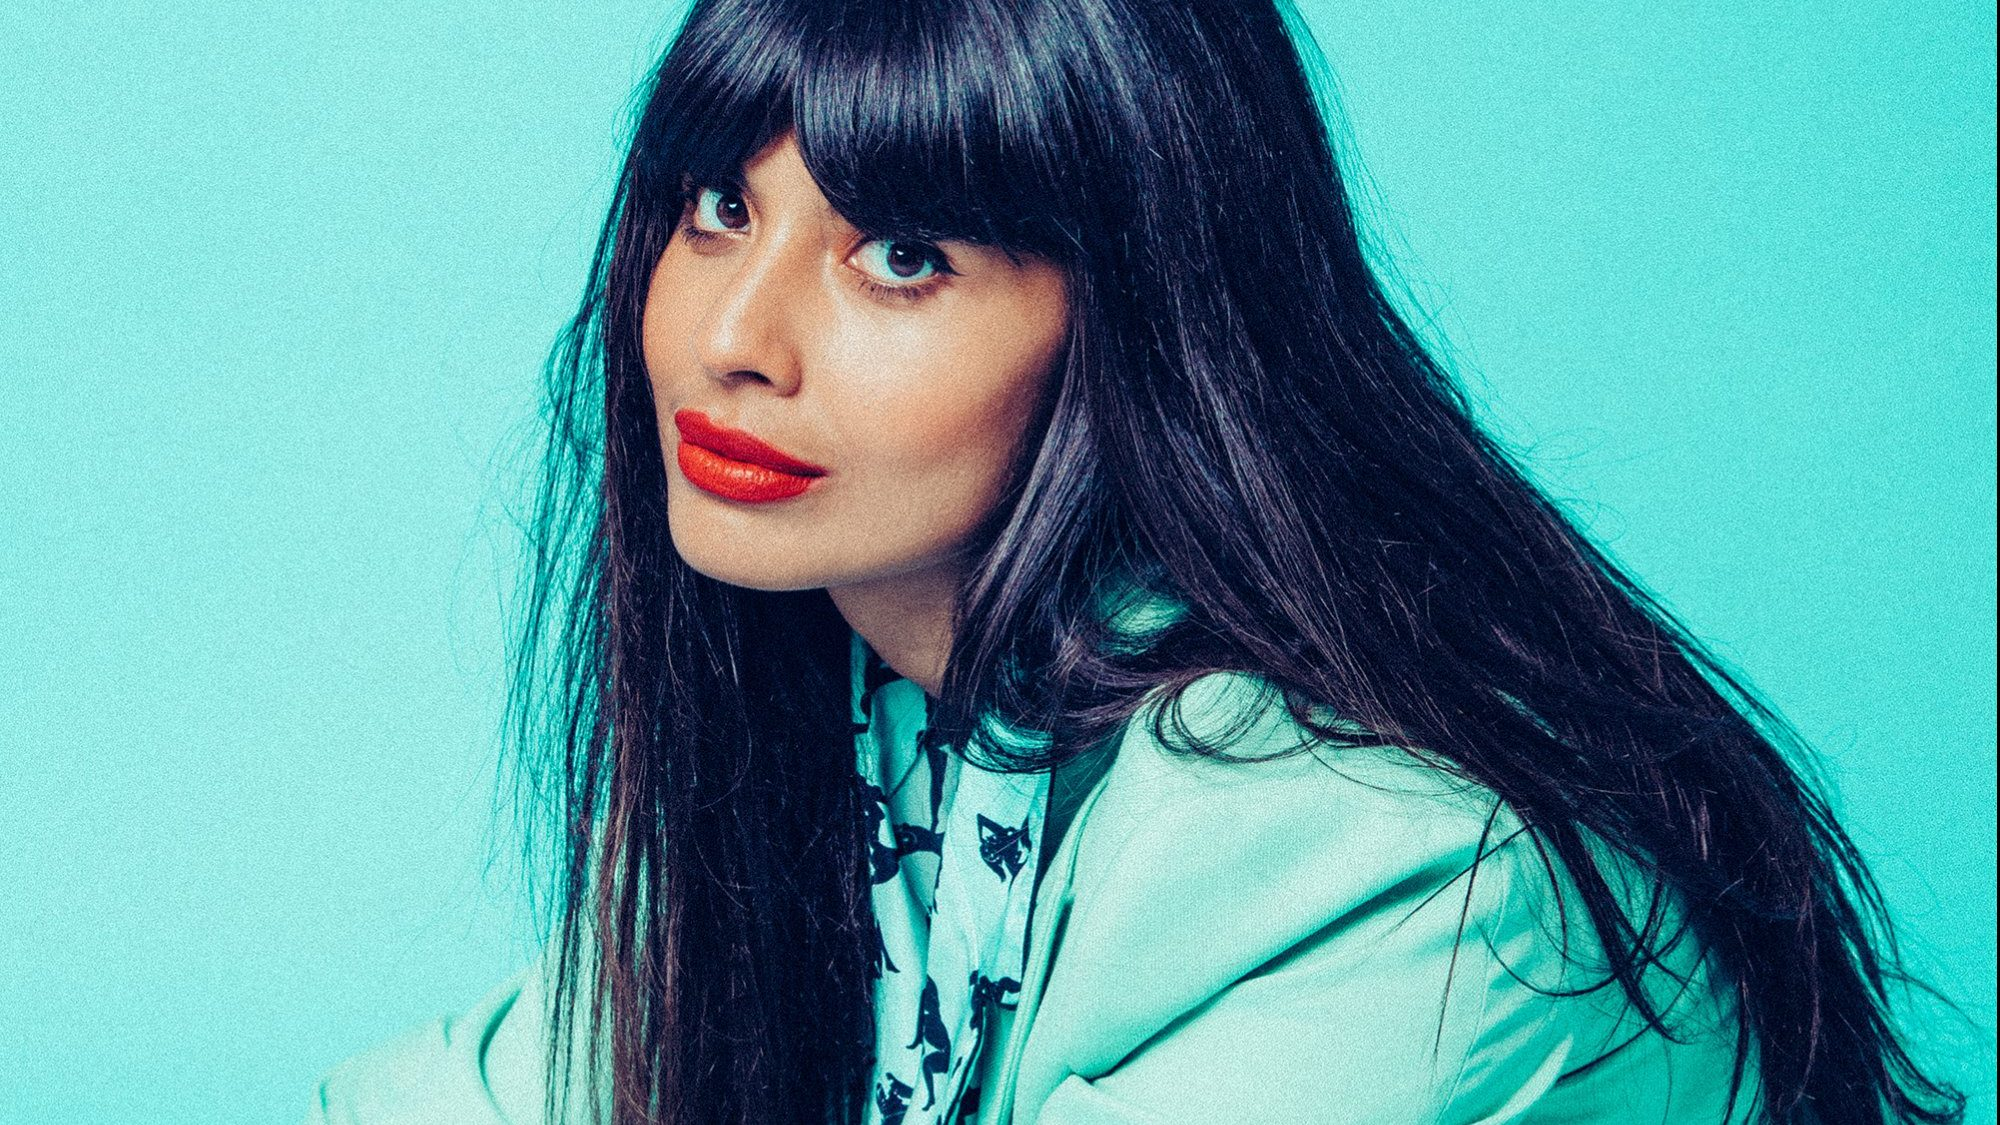 Jameela Jamil on The Good Place, I Weigh, Diversity and Ted Danson